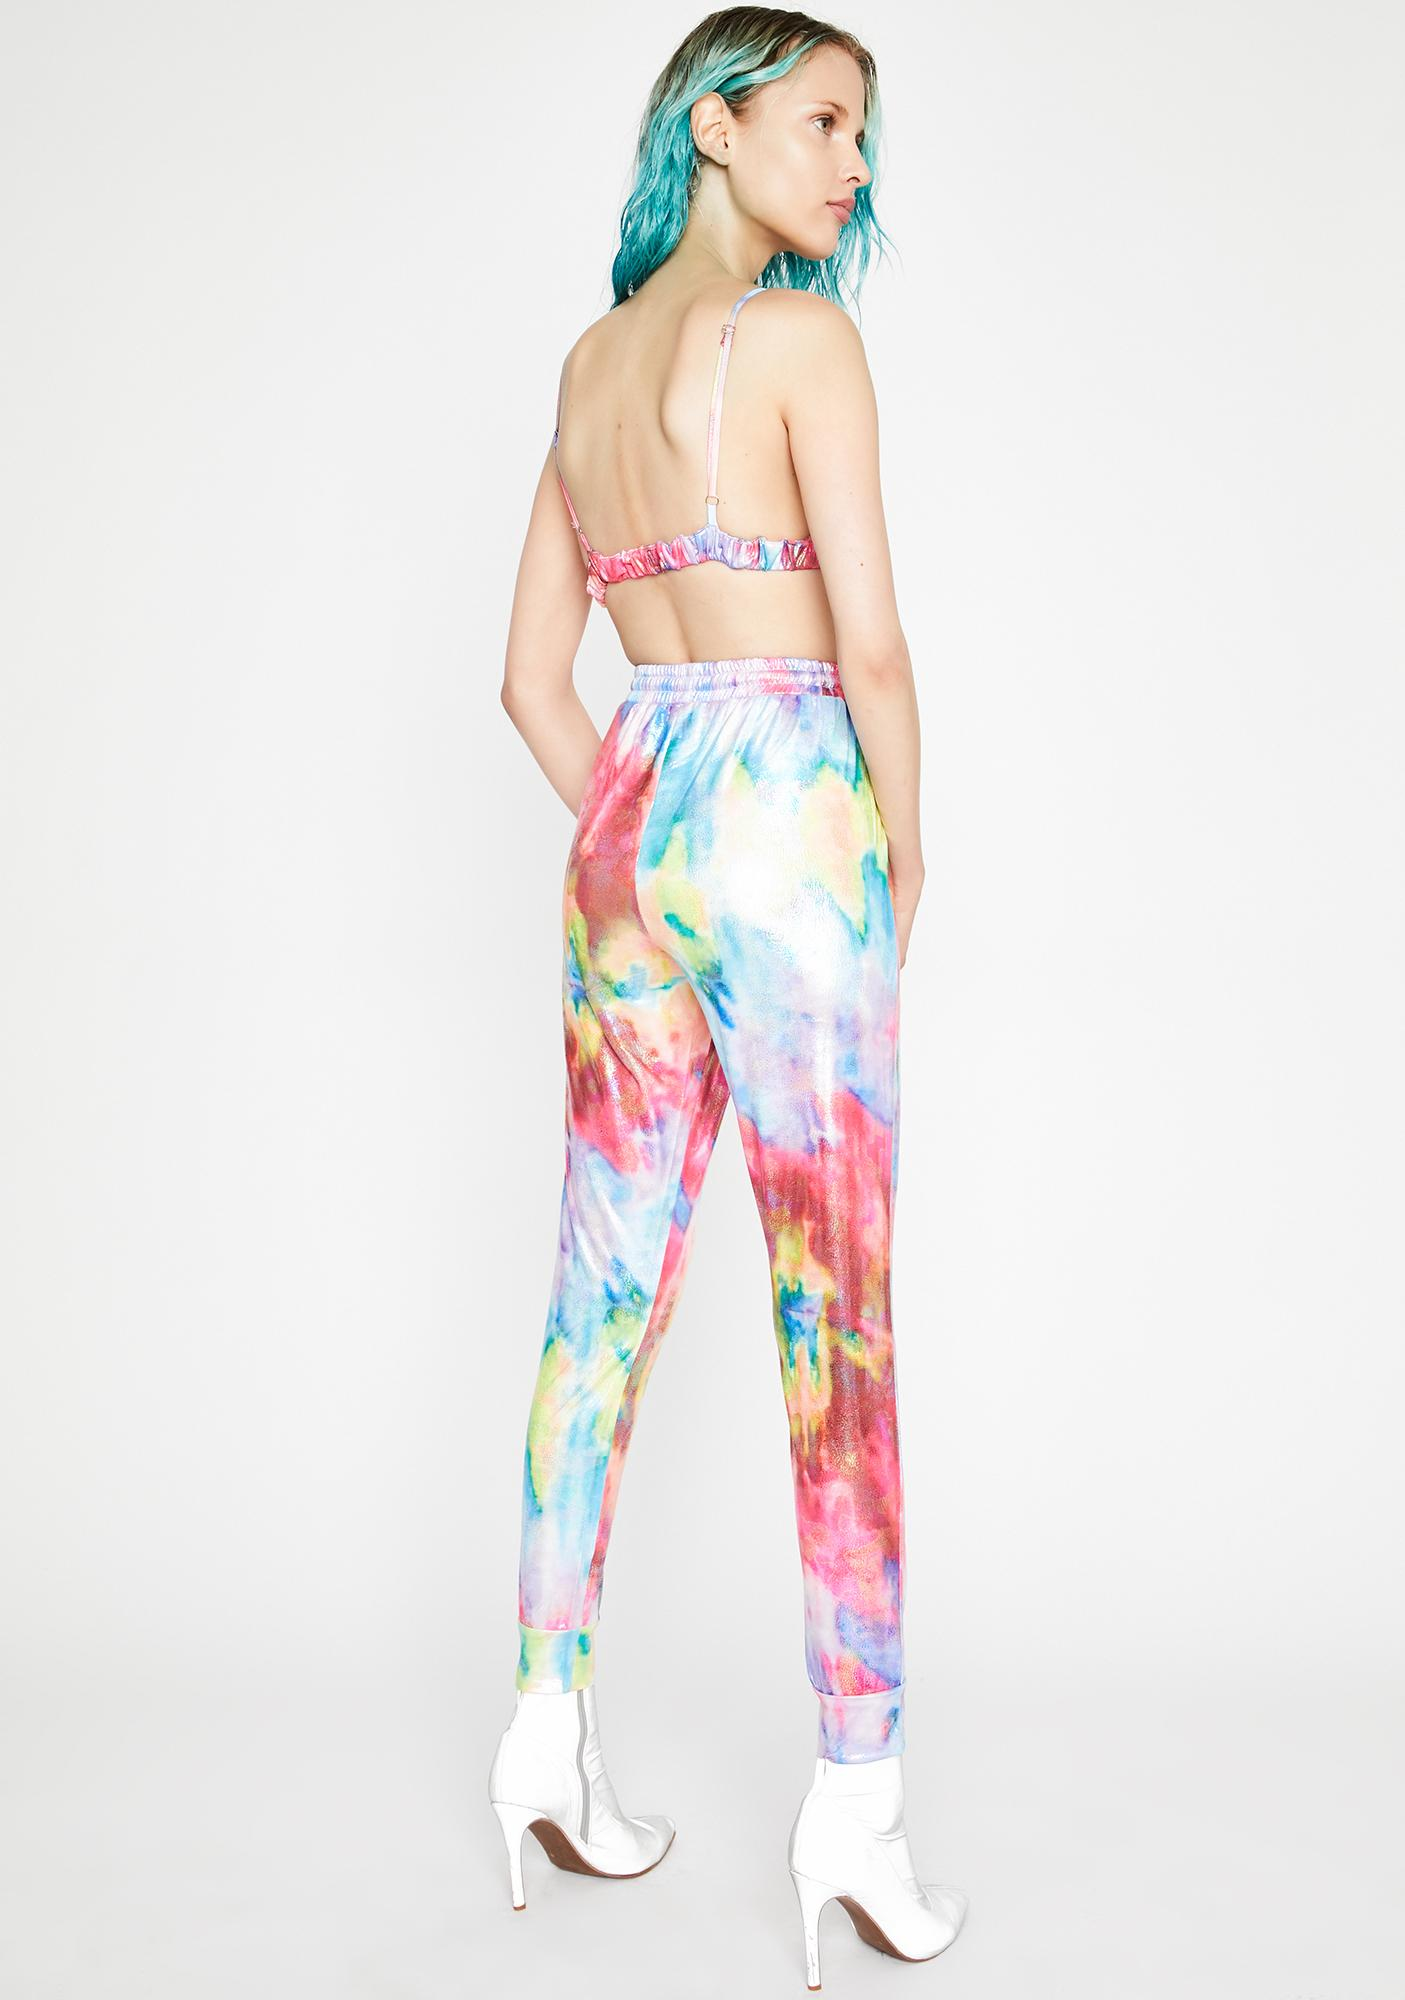 Party In The Hills Pant Set